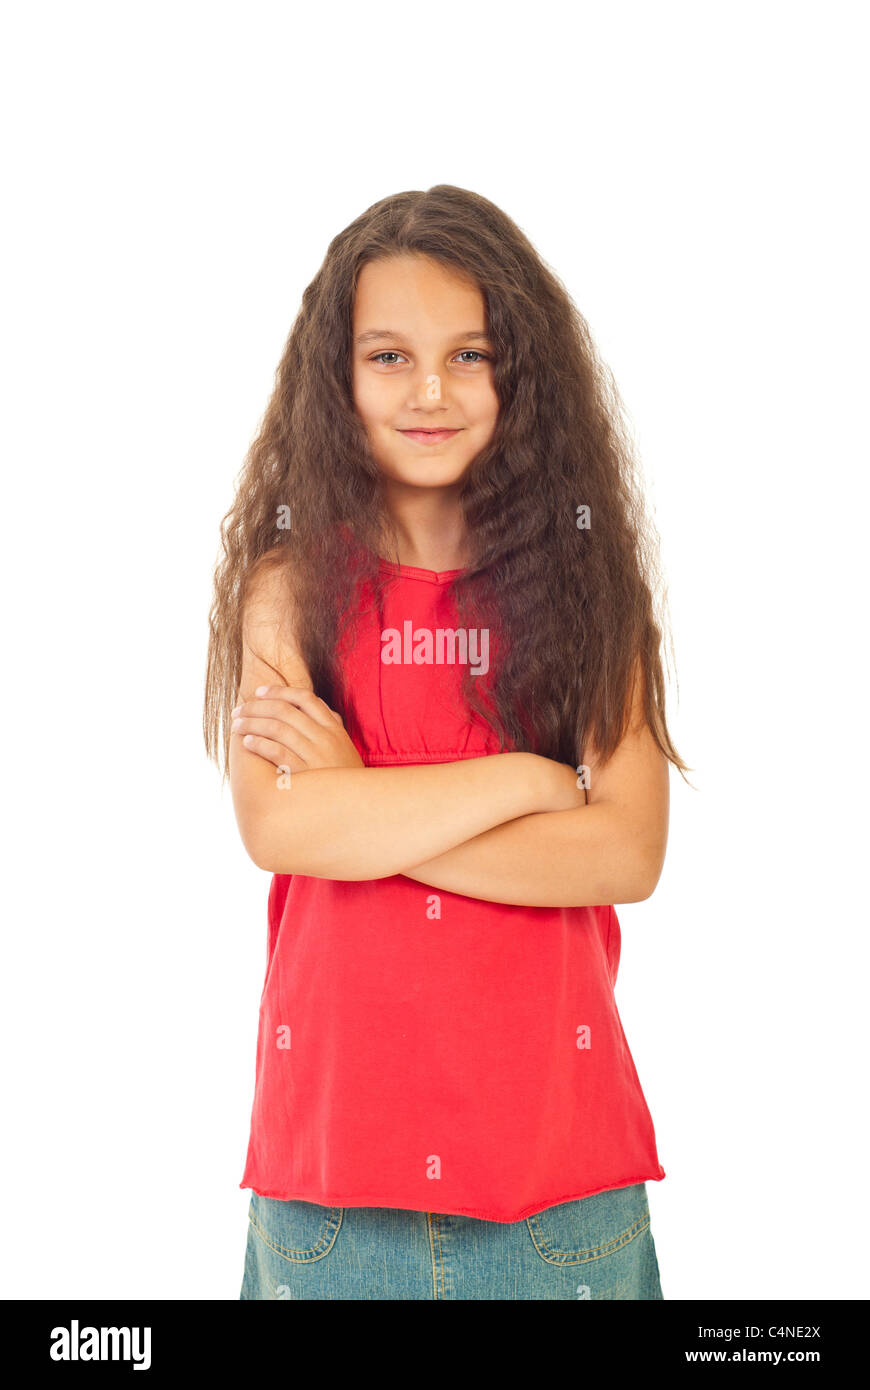 pretty girl seven years old with long curly hair standing with arms